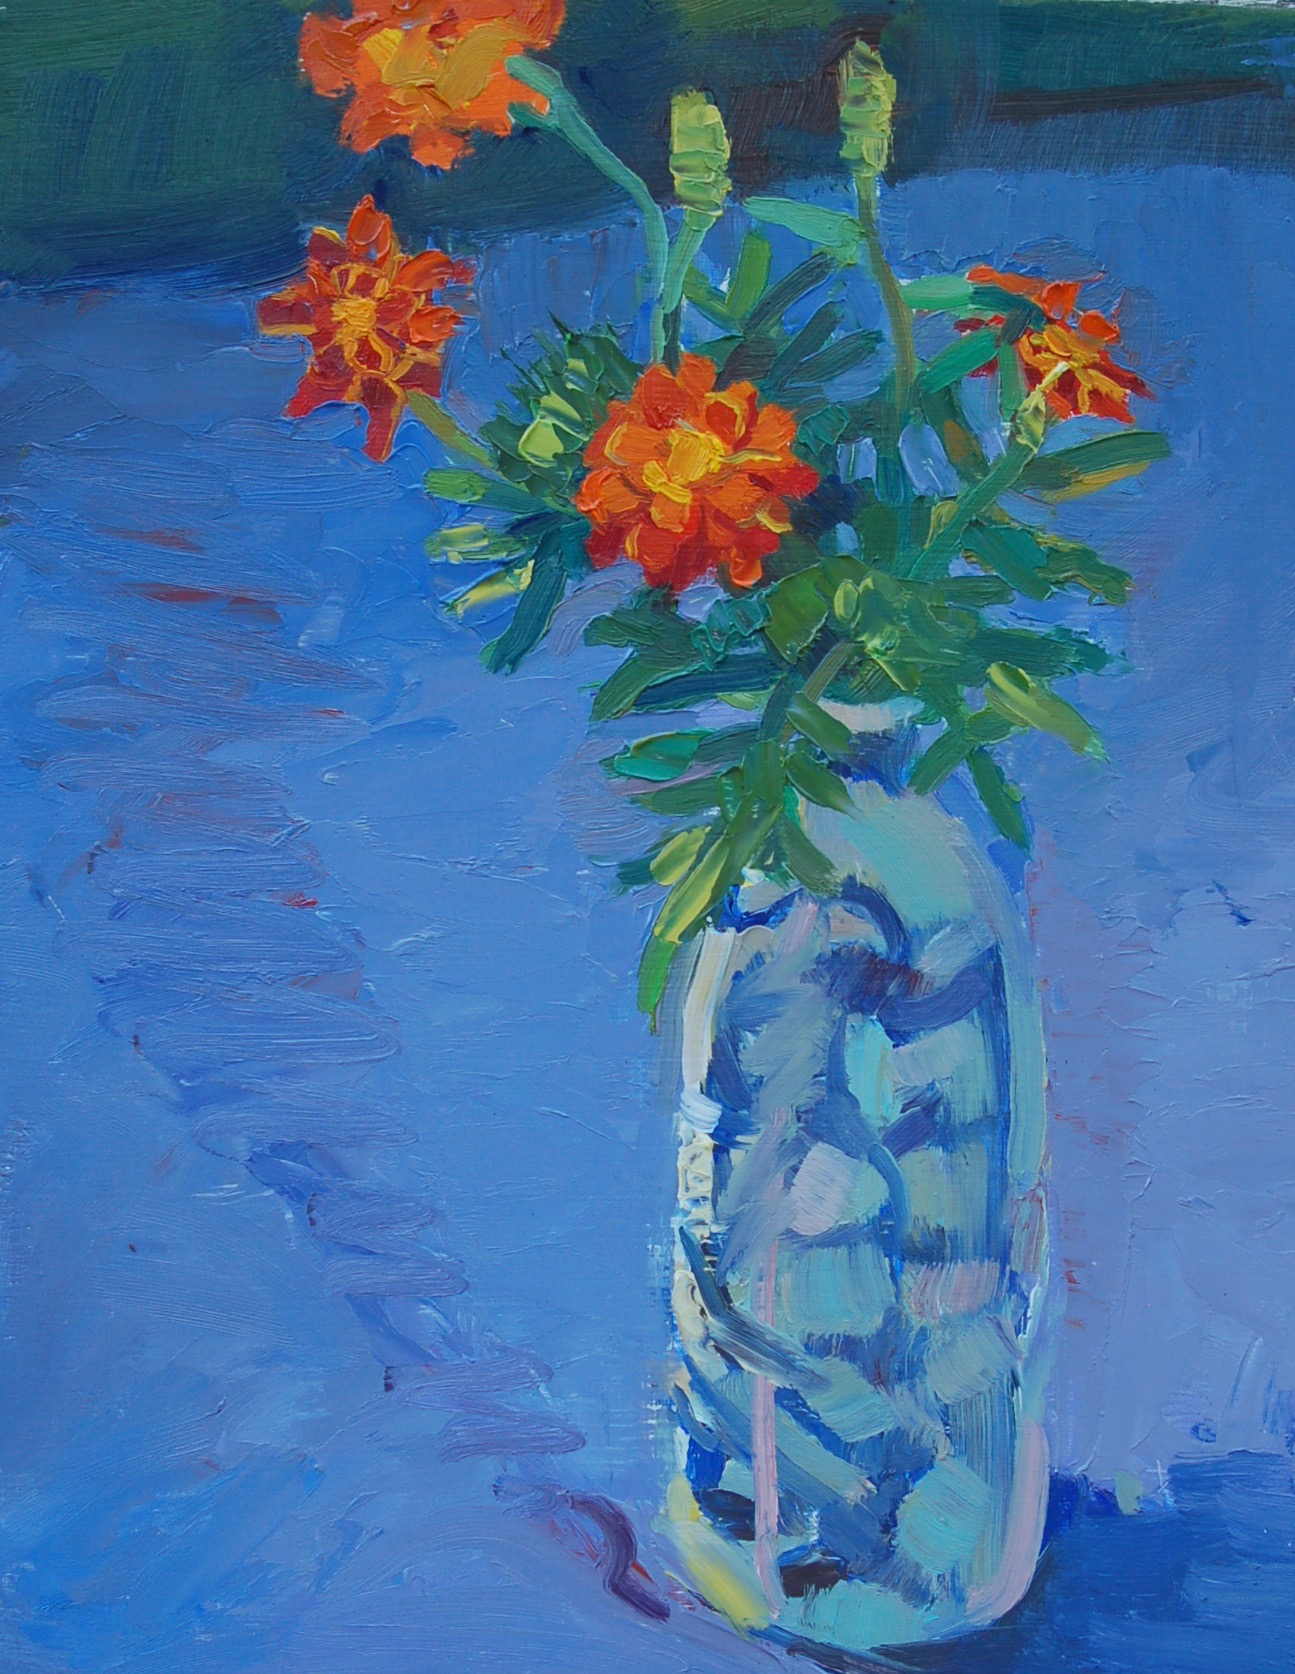 Marigolds, oil painting by Margie Boynton     Psalm 19:7-19  (NIV)   The law of the Lord is perfect,      reviving the soul.     The statutes of the Lord are trustworthy,       making wise the simple.     The precepts of the Lord are right,       giving joy to the heart.     The commands of the Lord are radiant,       giving light to the eyes .    The fear of the Lord is pure,       enduring forever.     The ordinances of the Lord are sure and altogether righteous.     They are more precious than gold,       than much pure gold:     They are sweeter than honey,       than honey from the comb.